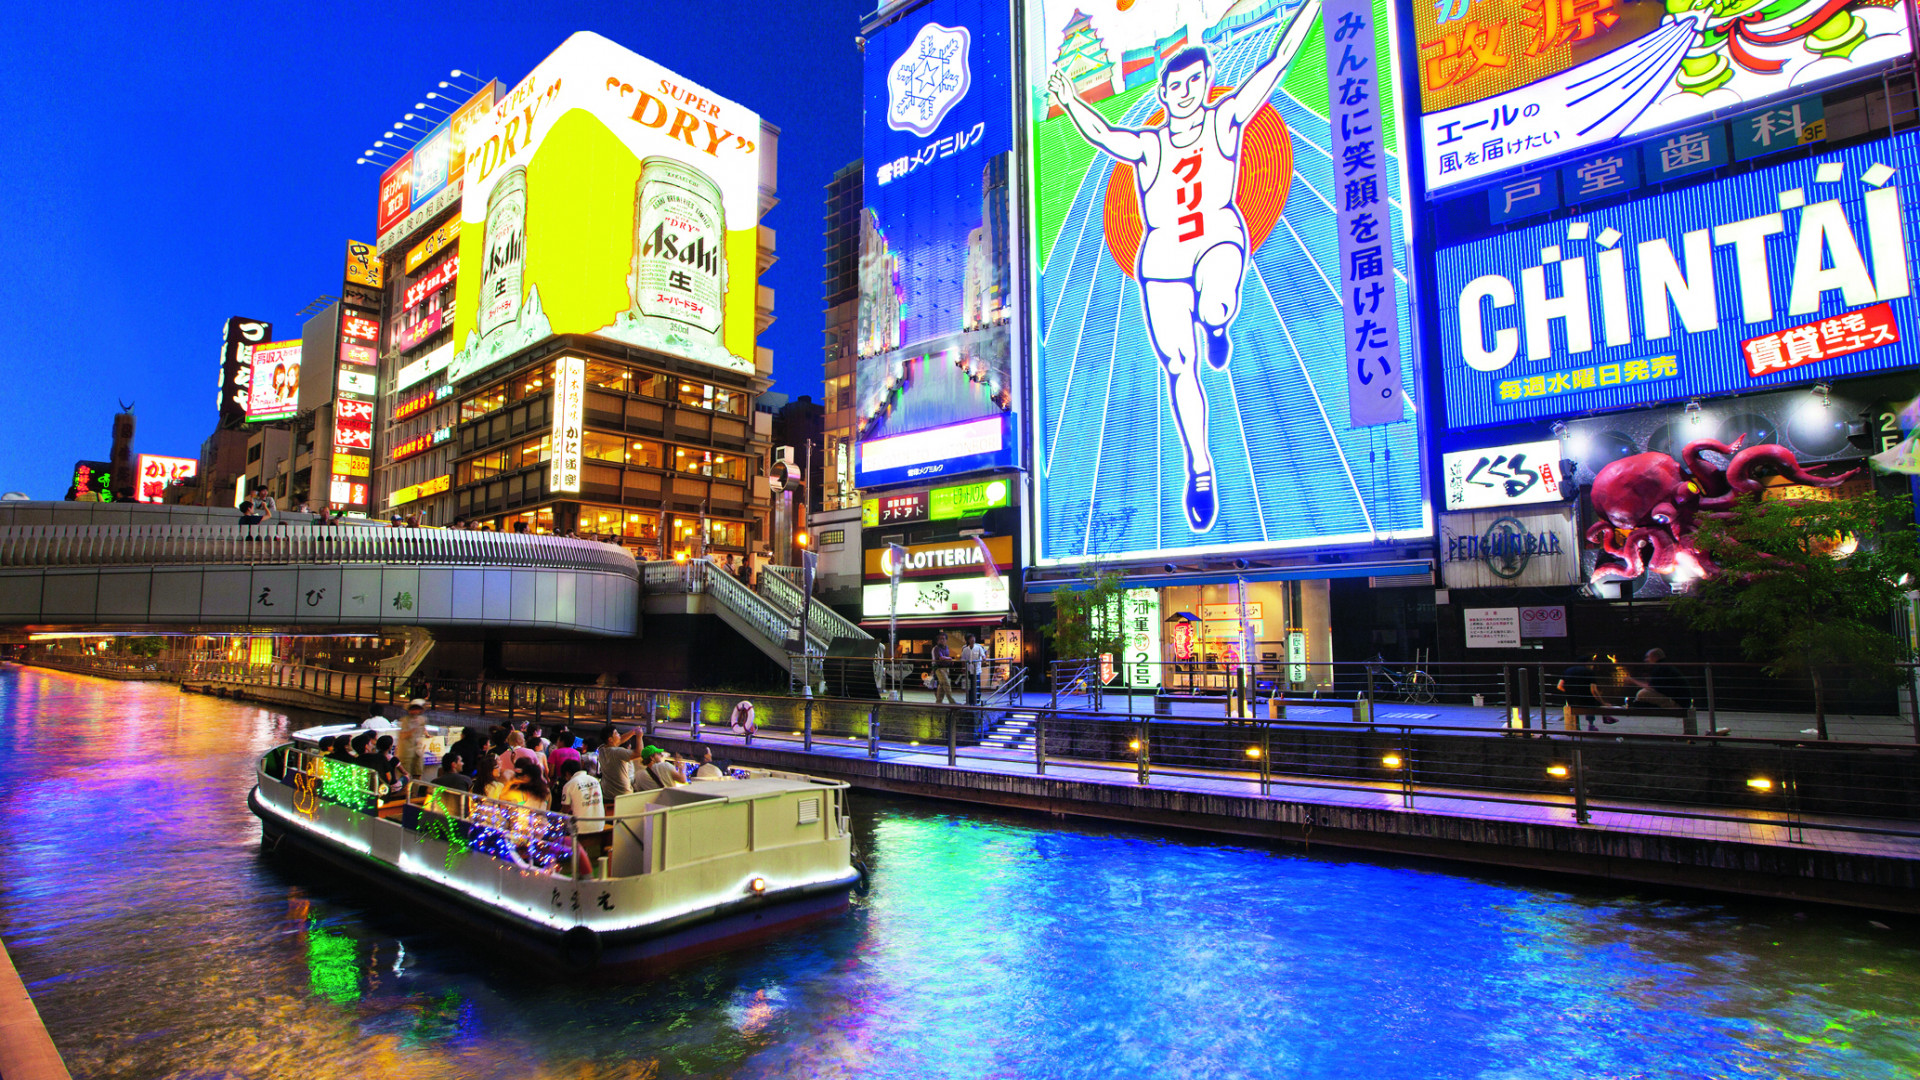 The neon lights of central Osaka